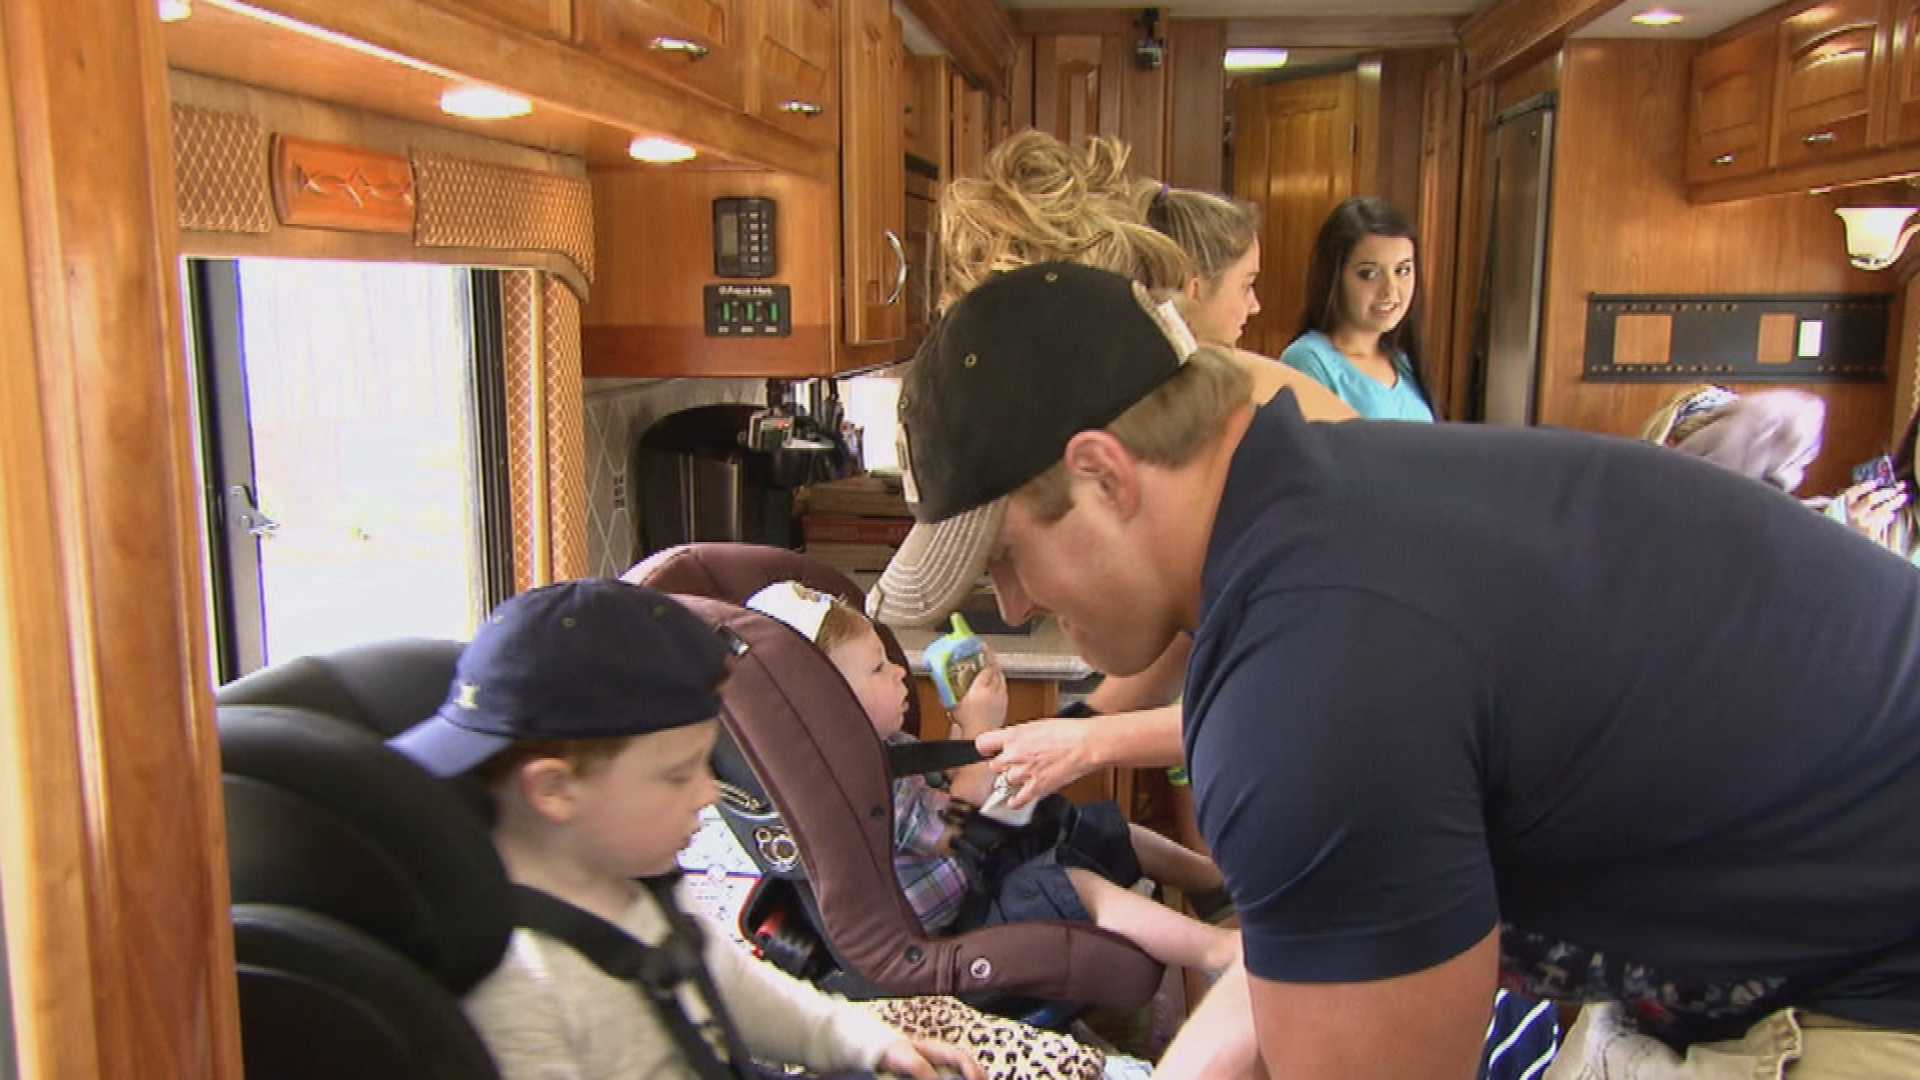 Next: A Biermann Family Road Trip